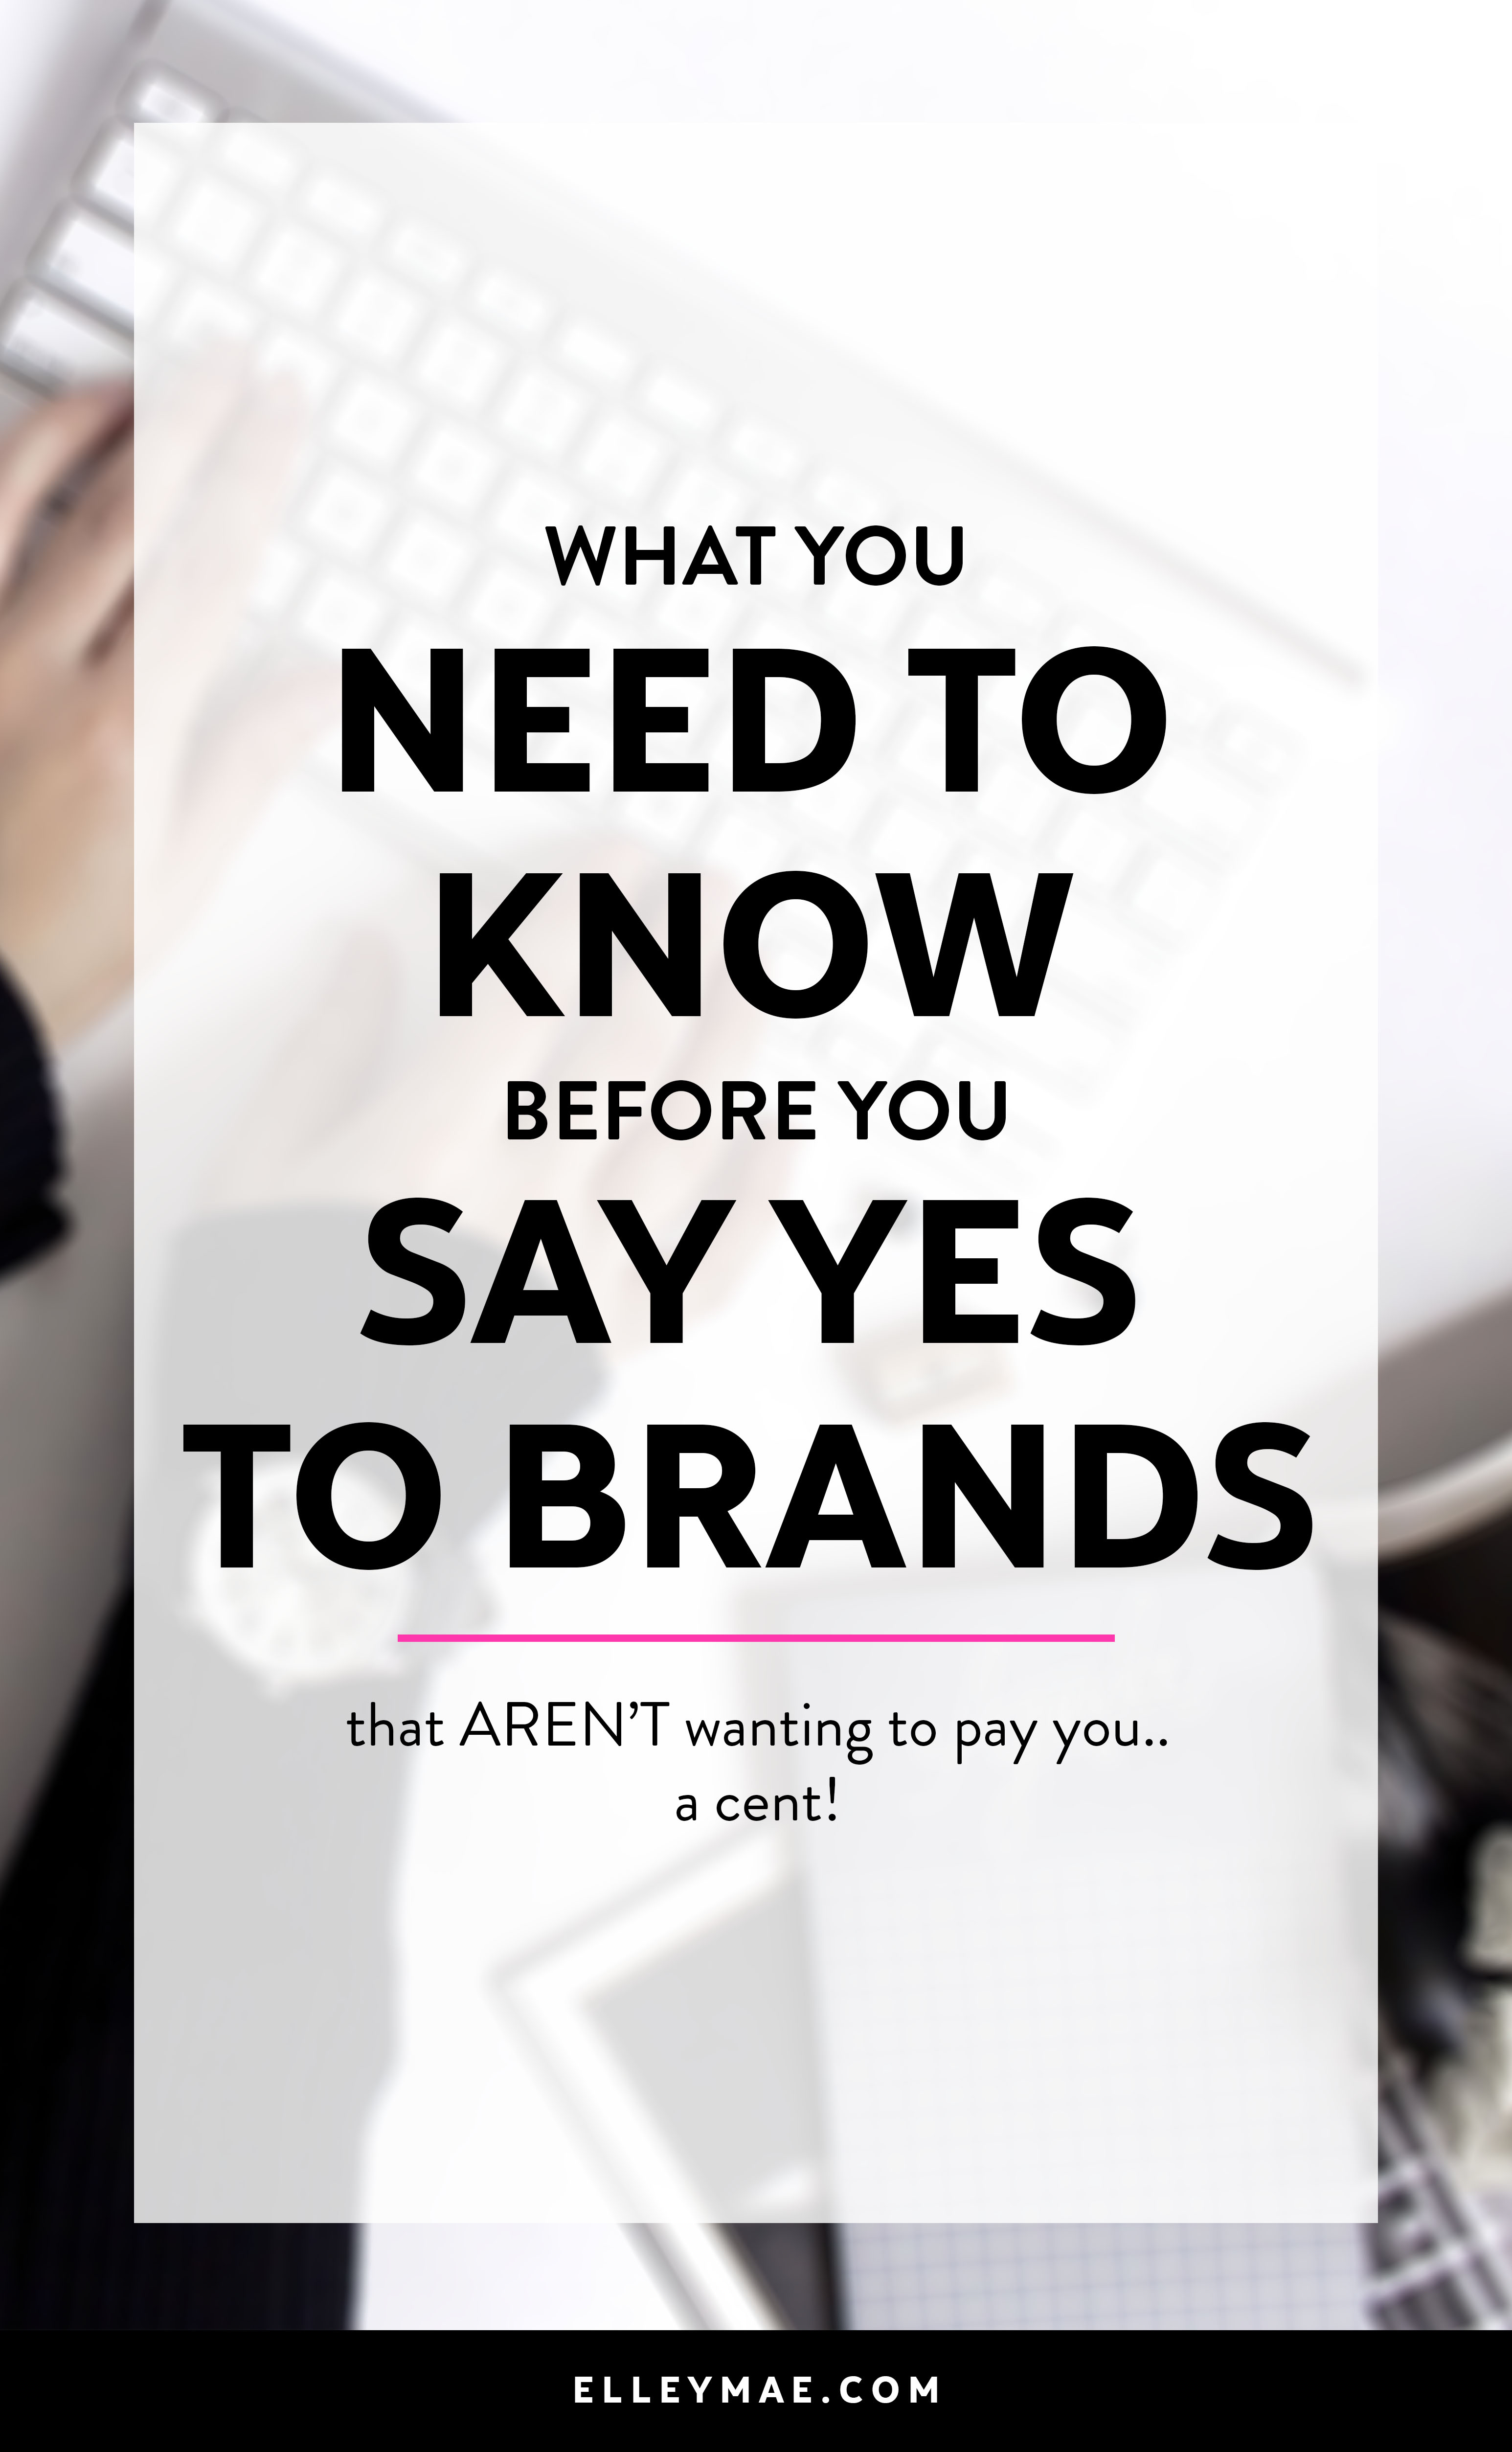 Everyone loves getting free stuff right?! Well, when it comes to being an Instagram Influencer, free product offers are a normal part of the day-to-day. But, should we be accepting every free product offer? Learn when & why you should actually be saying no to brands & why   Learn more at ElleyMae.com   #instagraminfluencer #freeproducts #workwithbrands